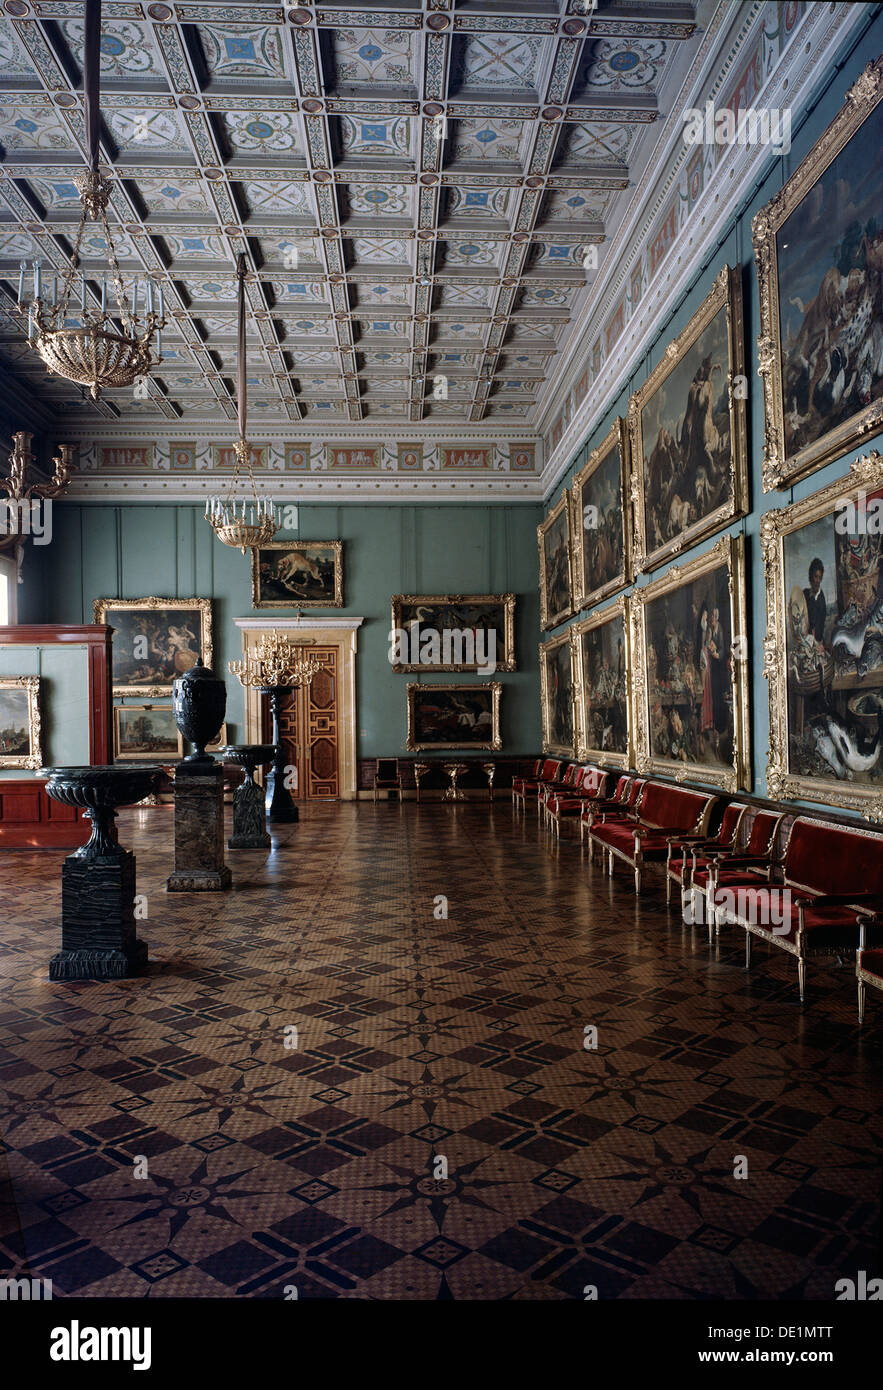 'The Hall of Flemish Paintings in the Hermitage' c20th century. - Stock Image